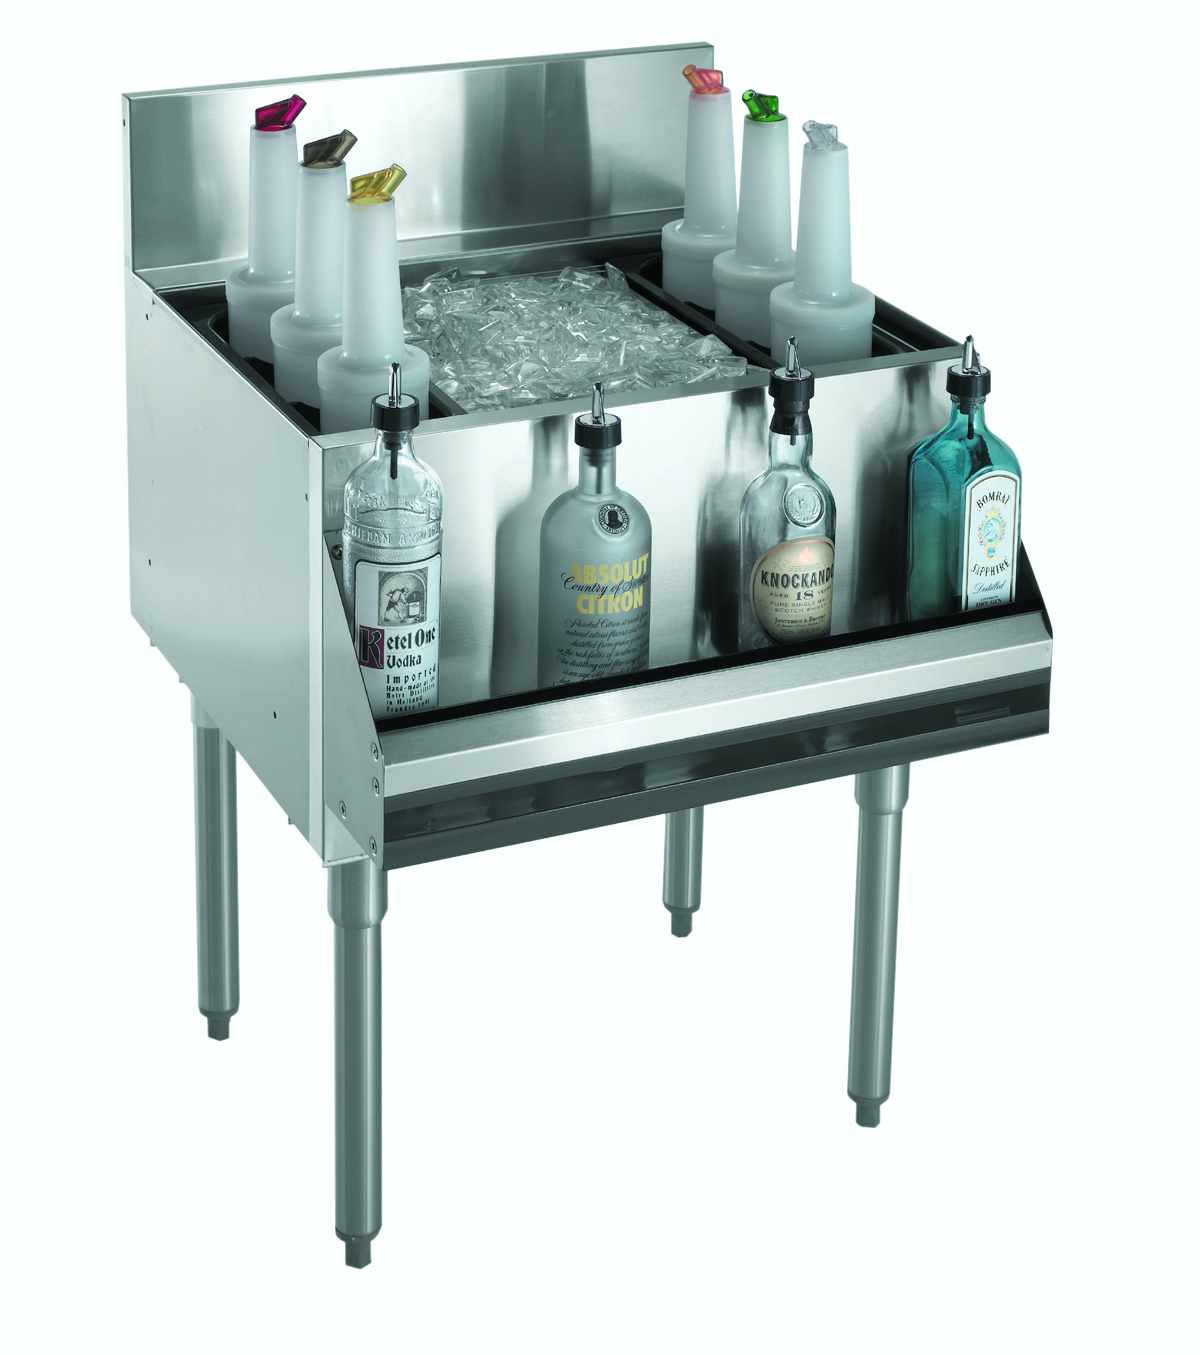 Krowne Metal KR21-24 underbar ice bin/cocktail unit